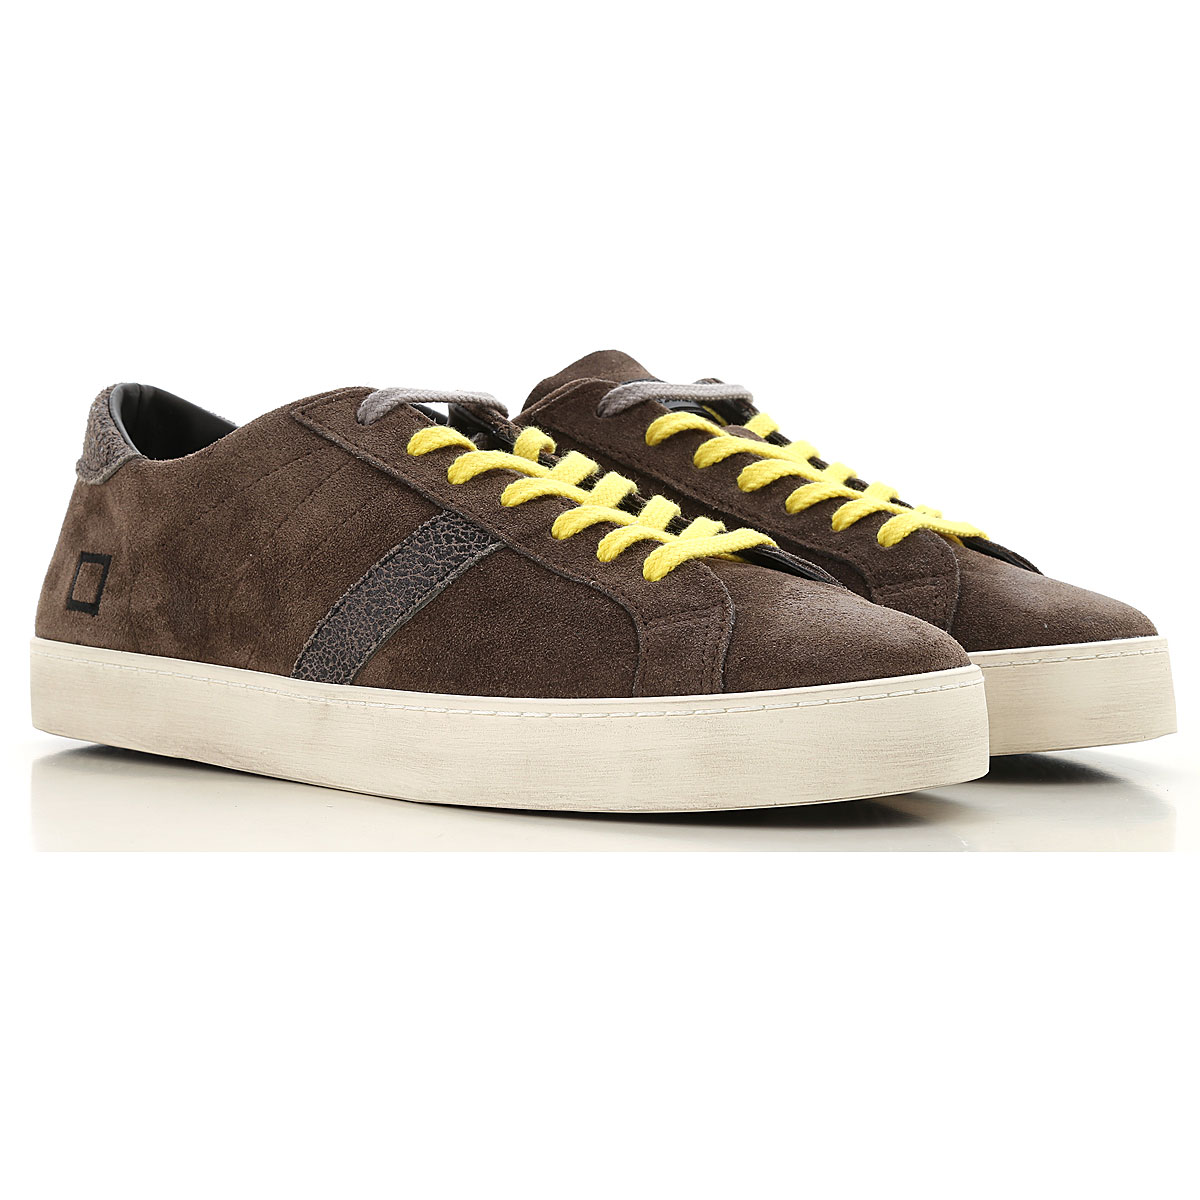 D.A.T.E. Sneakers for Men On Sale, Mud, Leather, 2019, 7